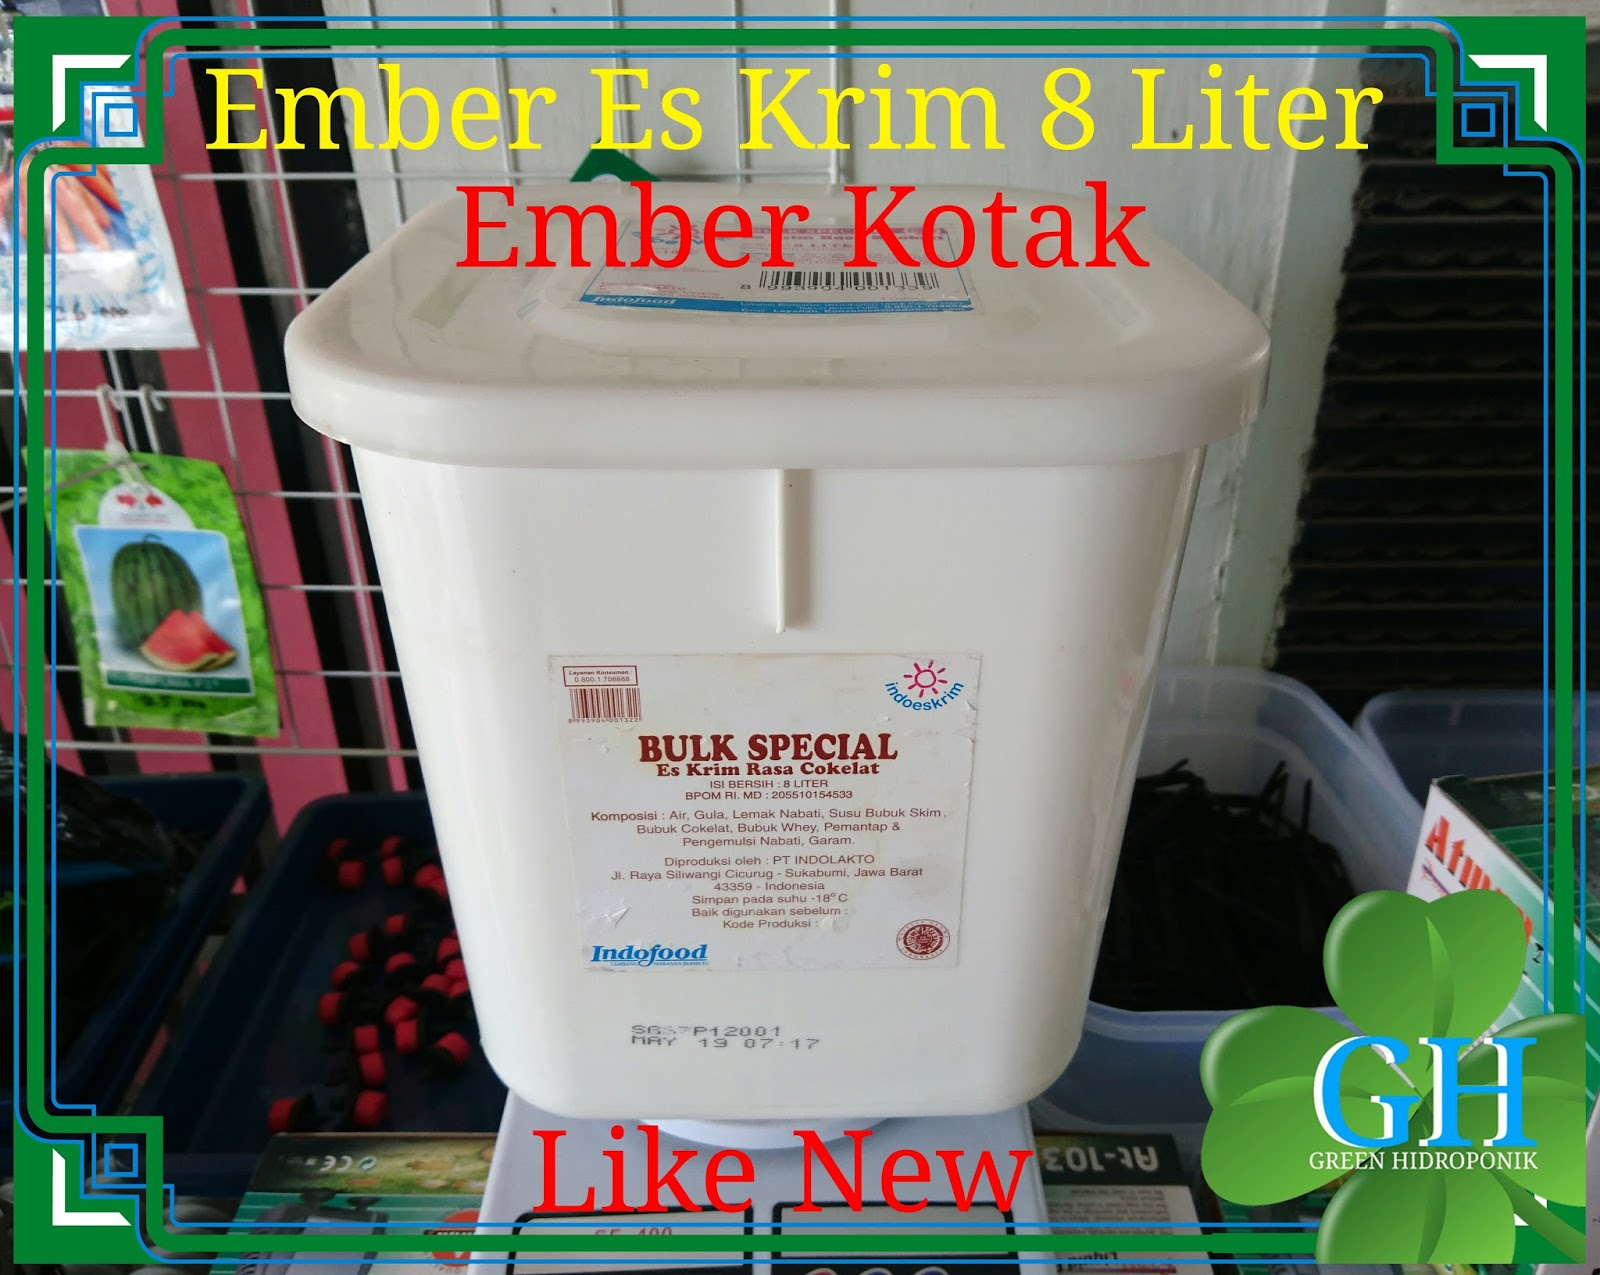 Ember Es Krim Kotak Ukuran 8 Liter Putih Like New Dbs Dutch Bucket 5 24